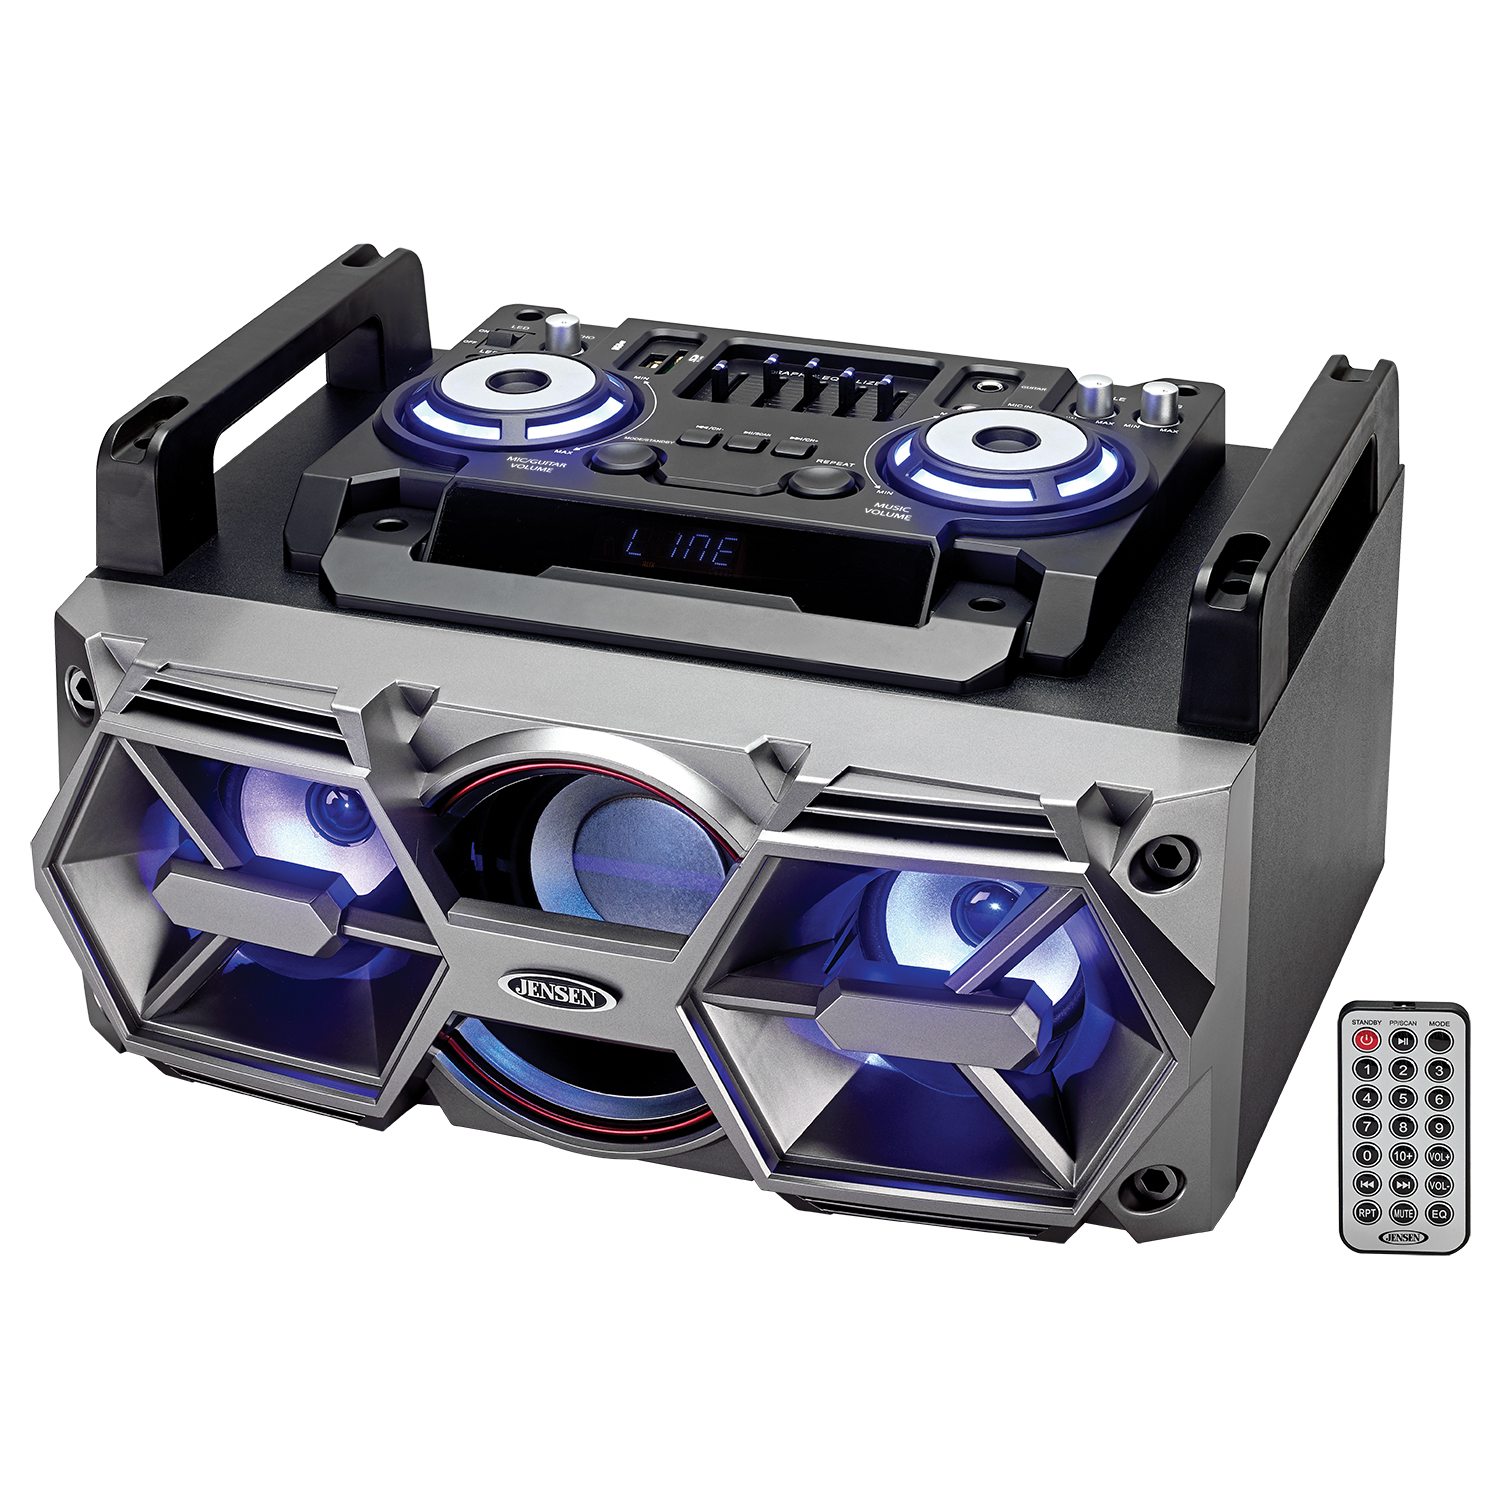 Jensen All-In-One Bluetooth Wireless Radio Mega Bass Stereo Boombox by Jensen